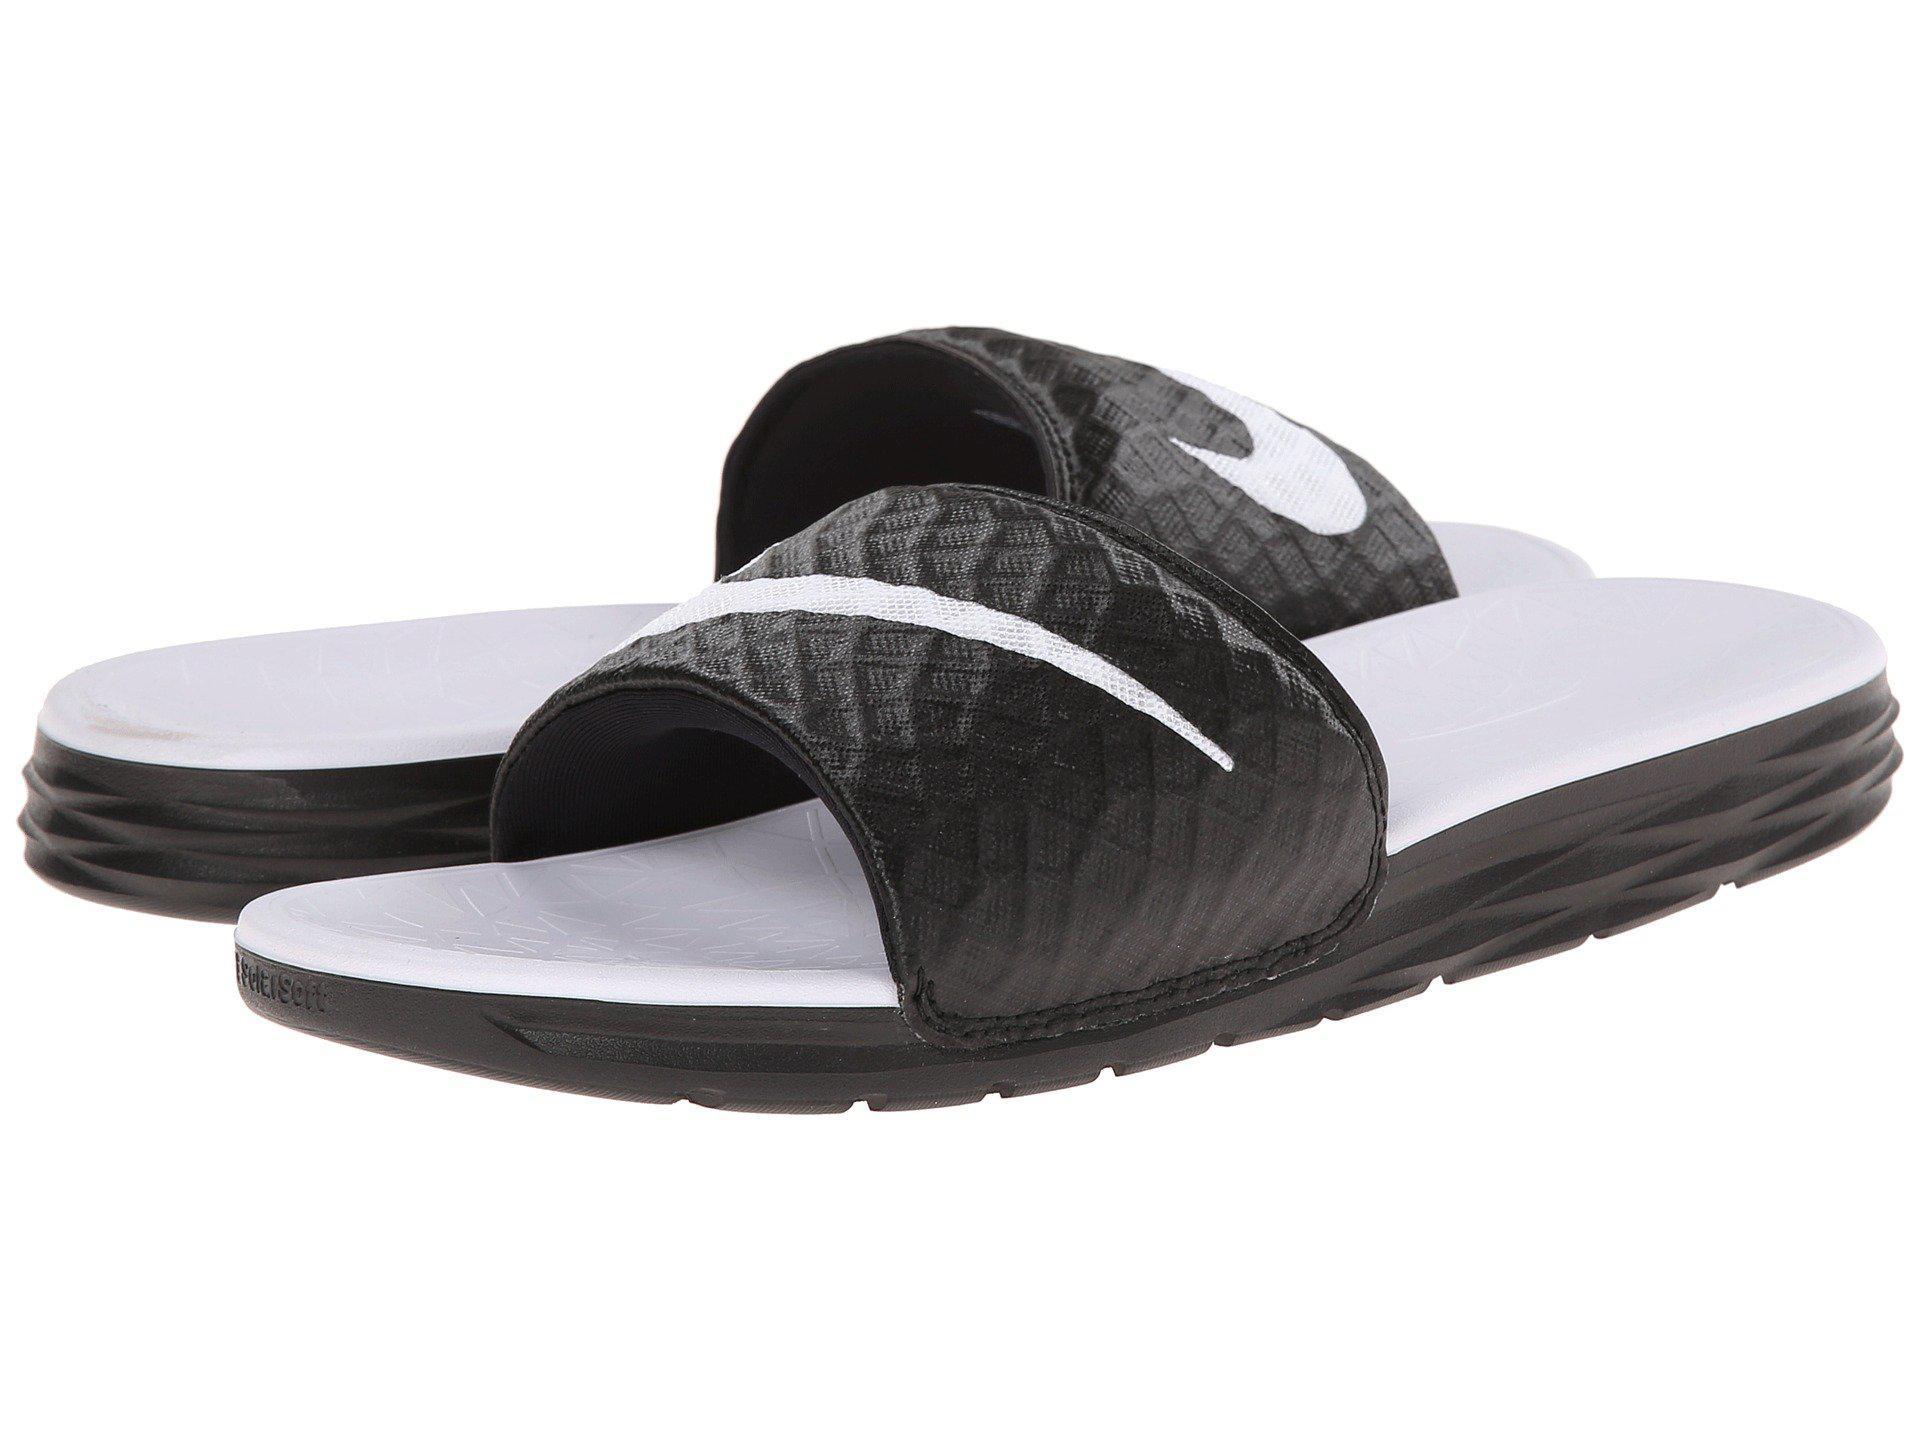 finest selection 6f483 7031f Lyst - Nike Benassi Solarsoft Slide 2 in Black